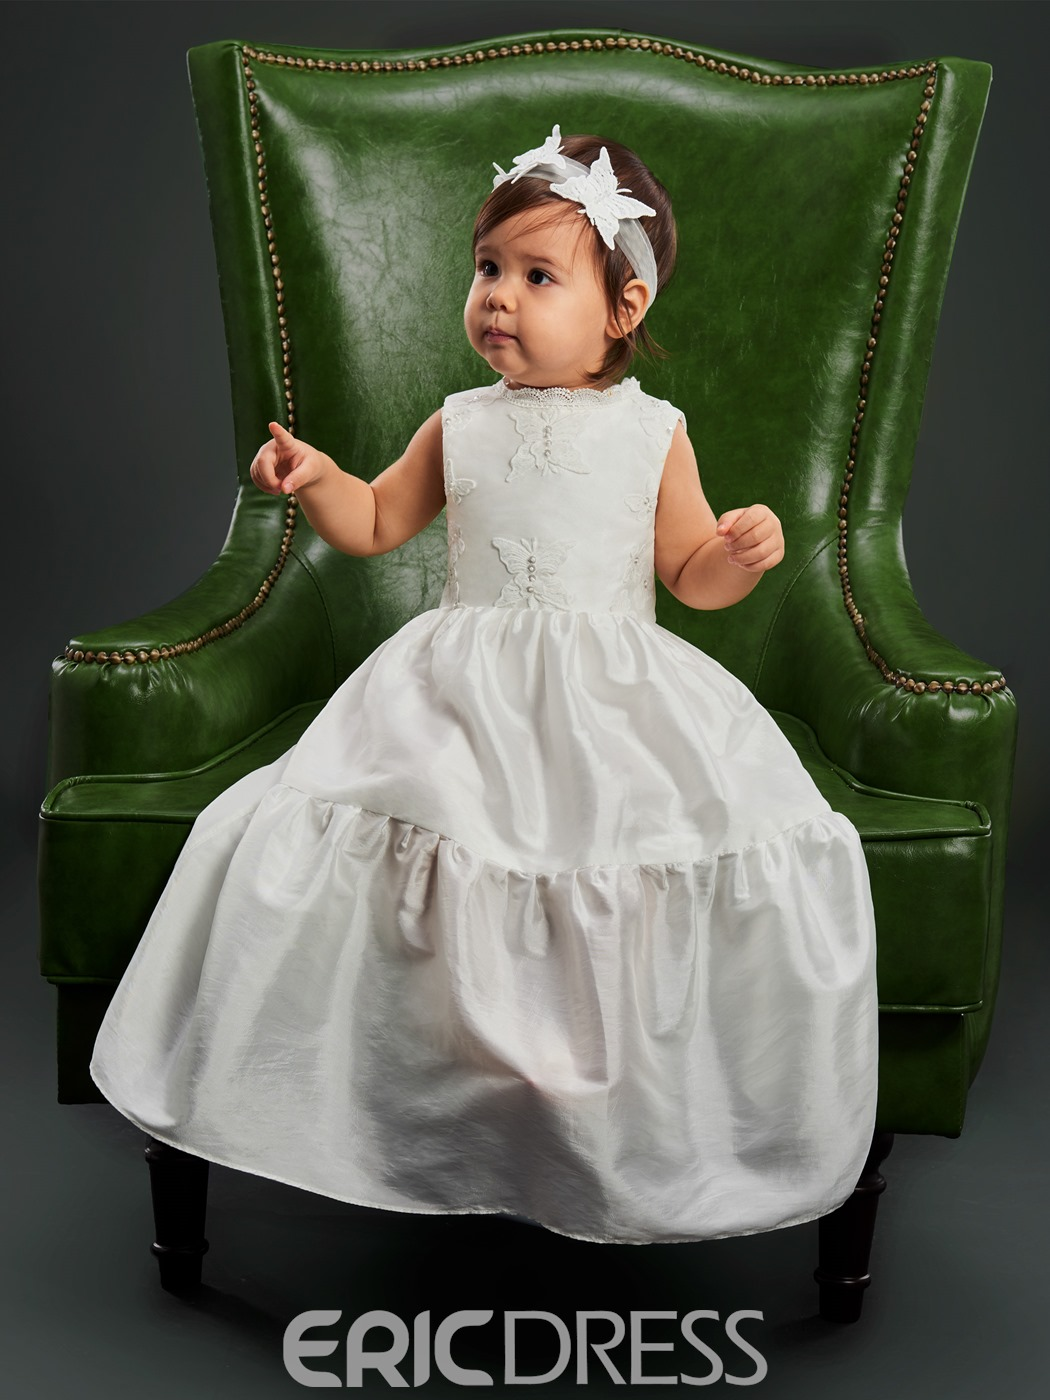 Ericdress Butterfly Lace Applique Sleeveless Christening Gown for Girl